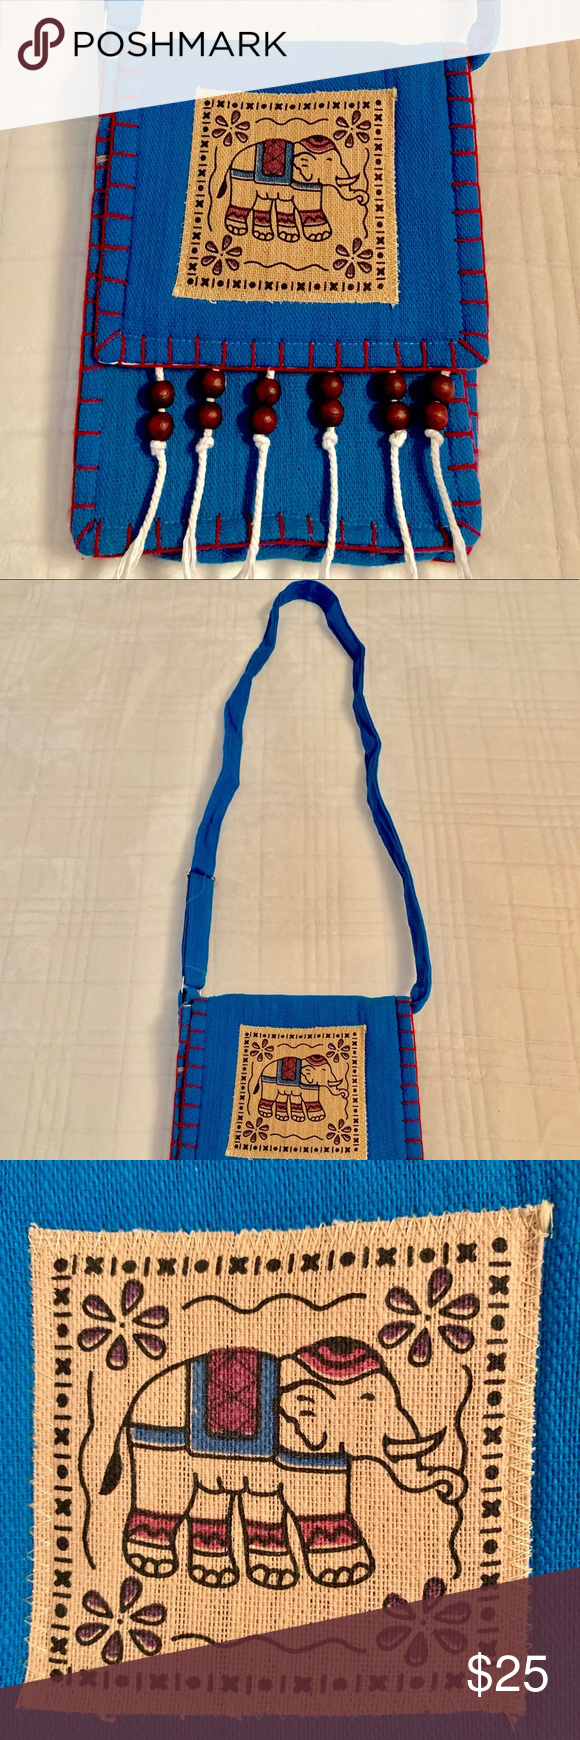 "NEW ITEM: Blue Elephant Shoulder Bag. Blue Elephant Shoulder Bag made in Thailand. Flap opening with two outside zipper pockets. One pocket in front and one in back. Dimensions: Width: 7.5"", Height 10"". Strap Length: 23"". Color: Blue and Beige. Brand New. Bags Shoulder Bags #elephantitems"